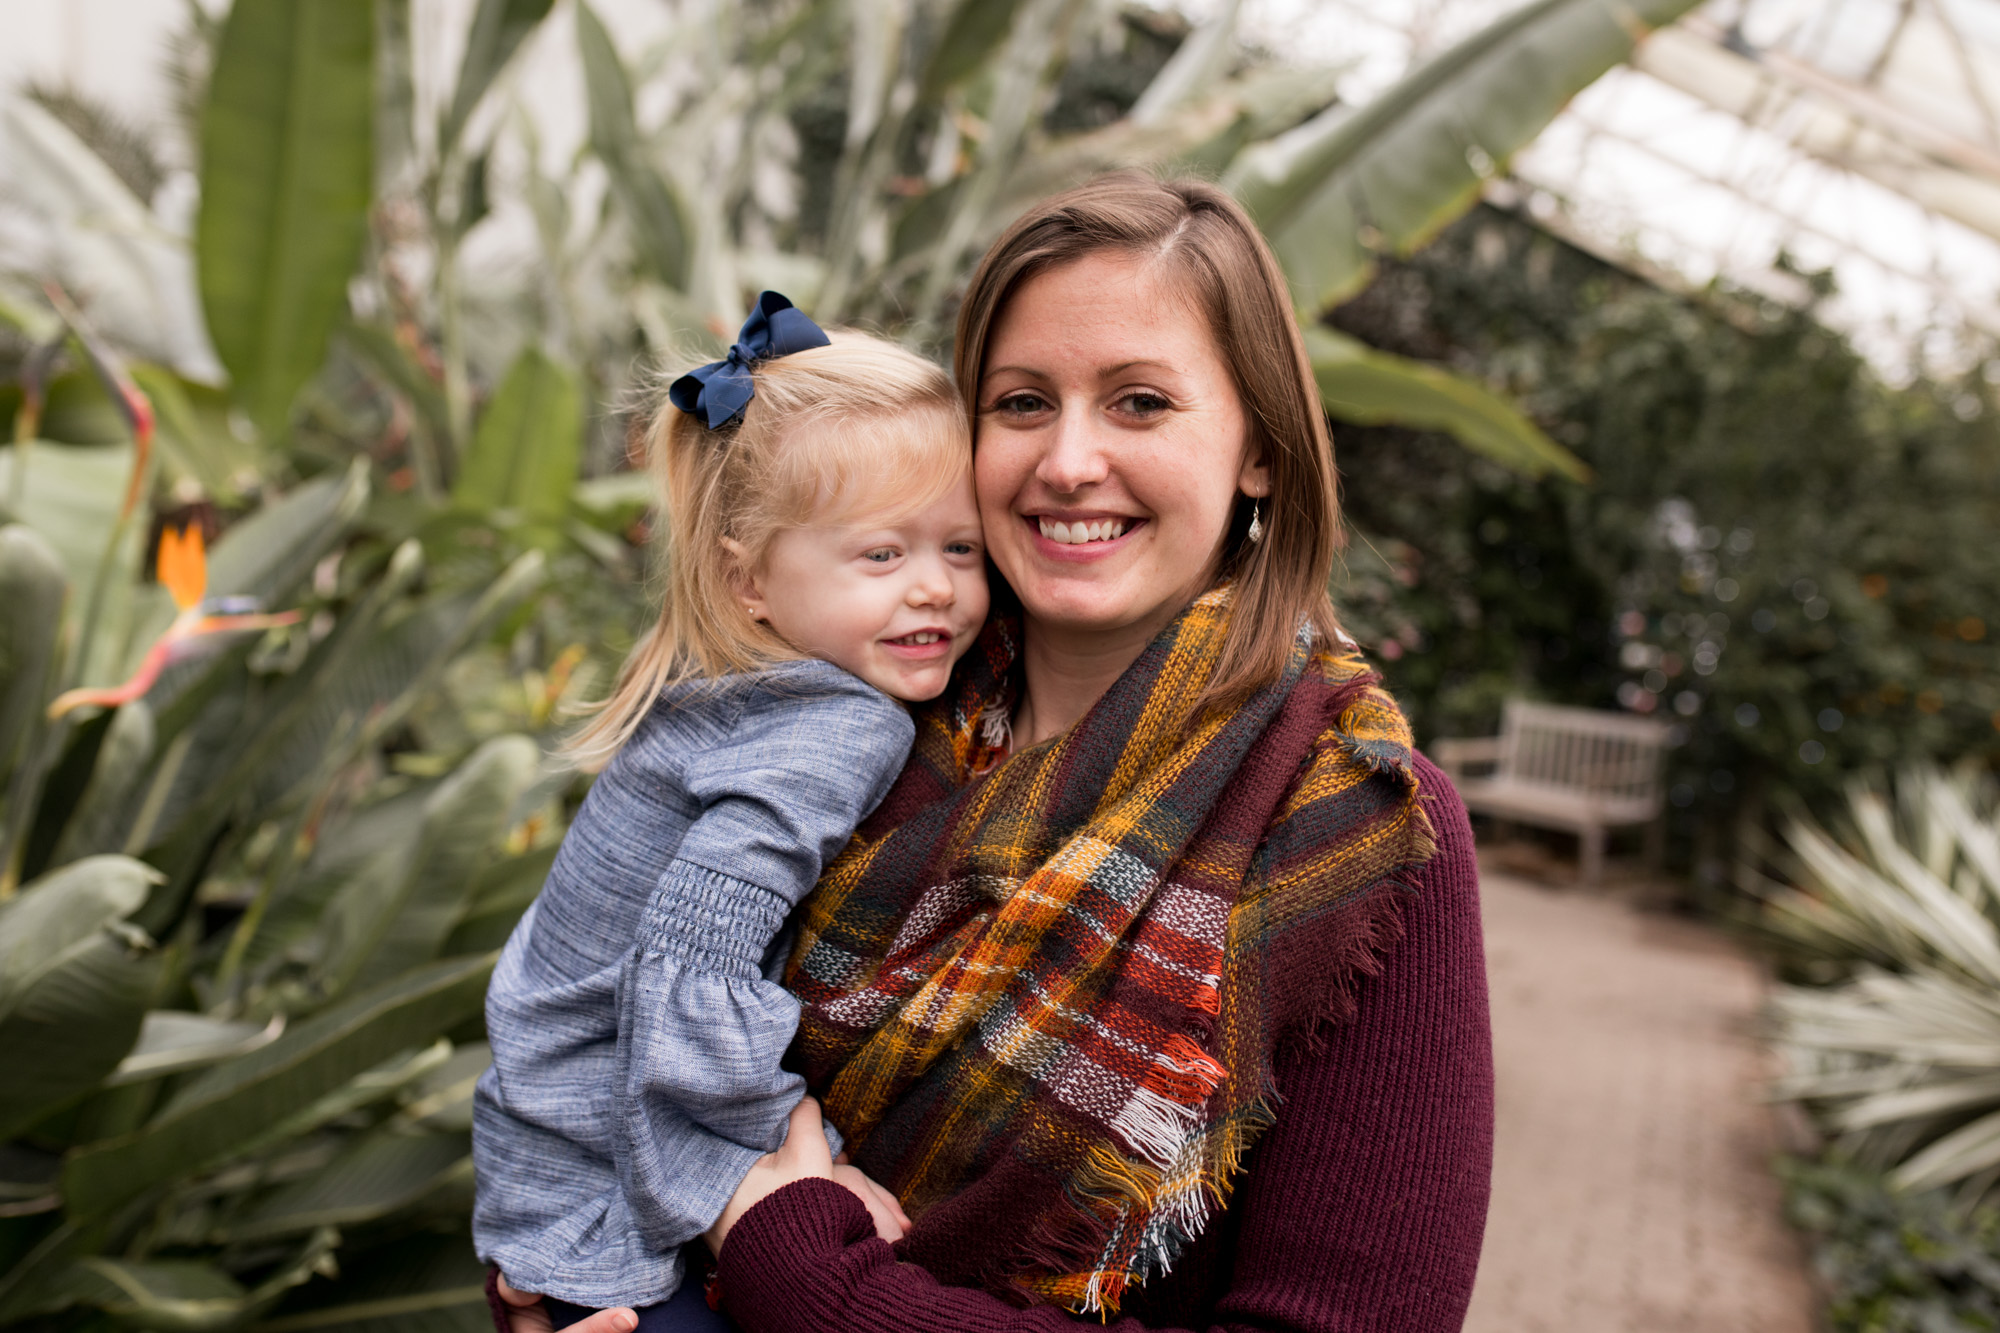 mom hugs daughter during Fort Wayne family session at Foellinger-Freimann Botanical Conservatory